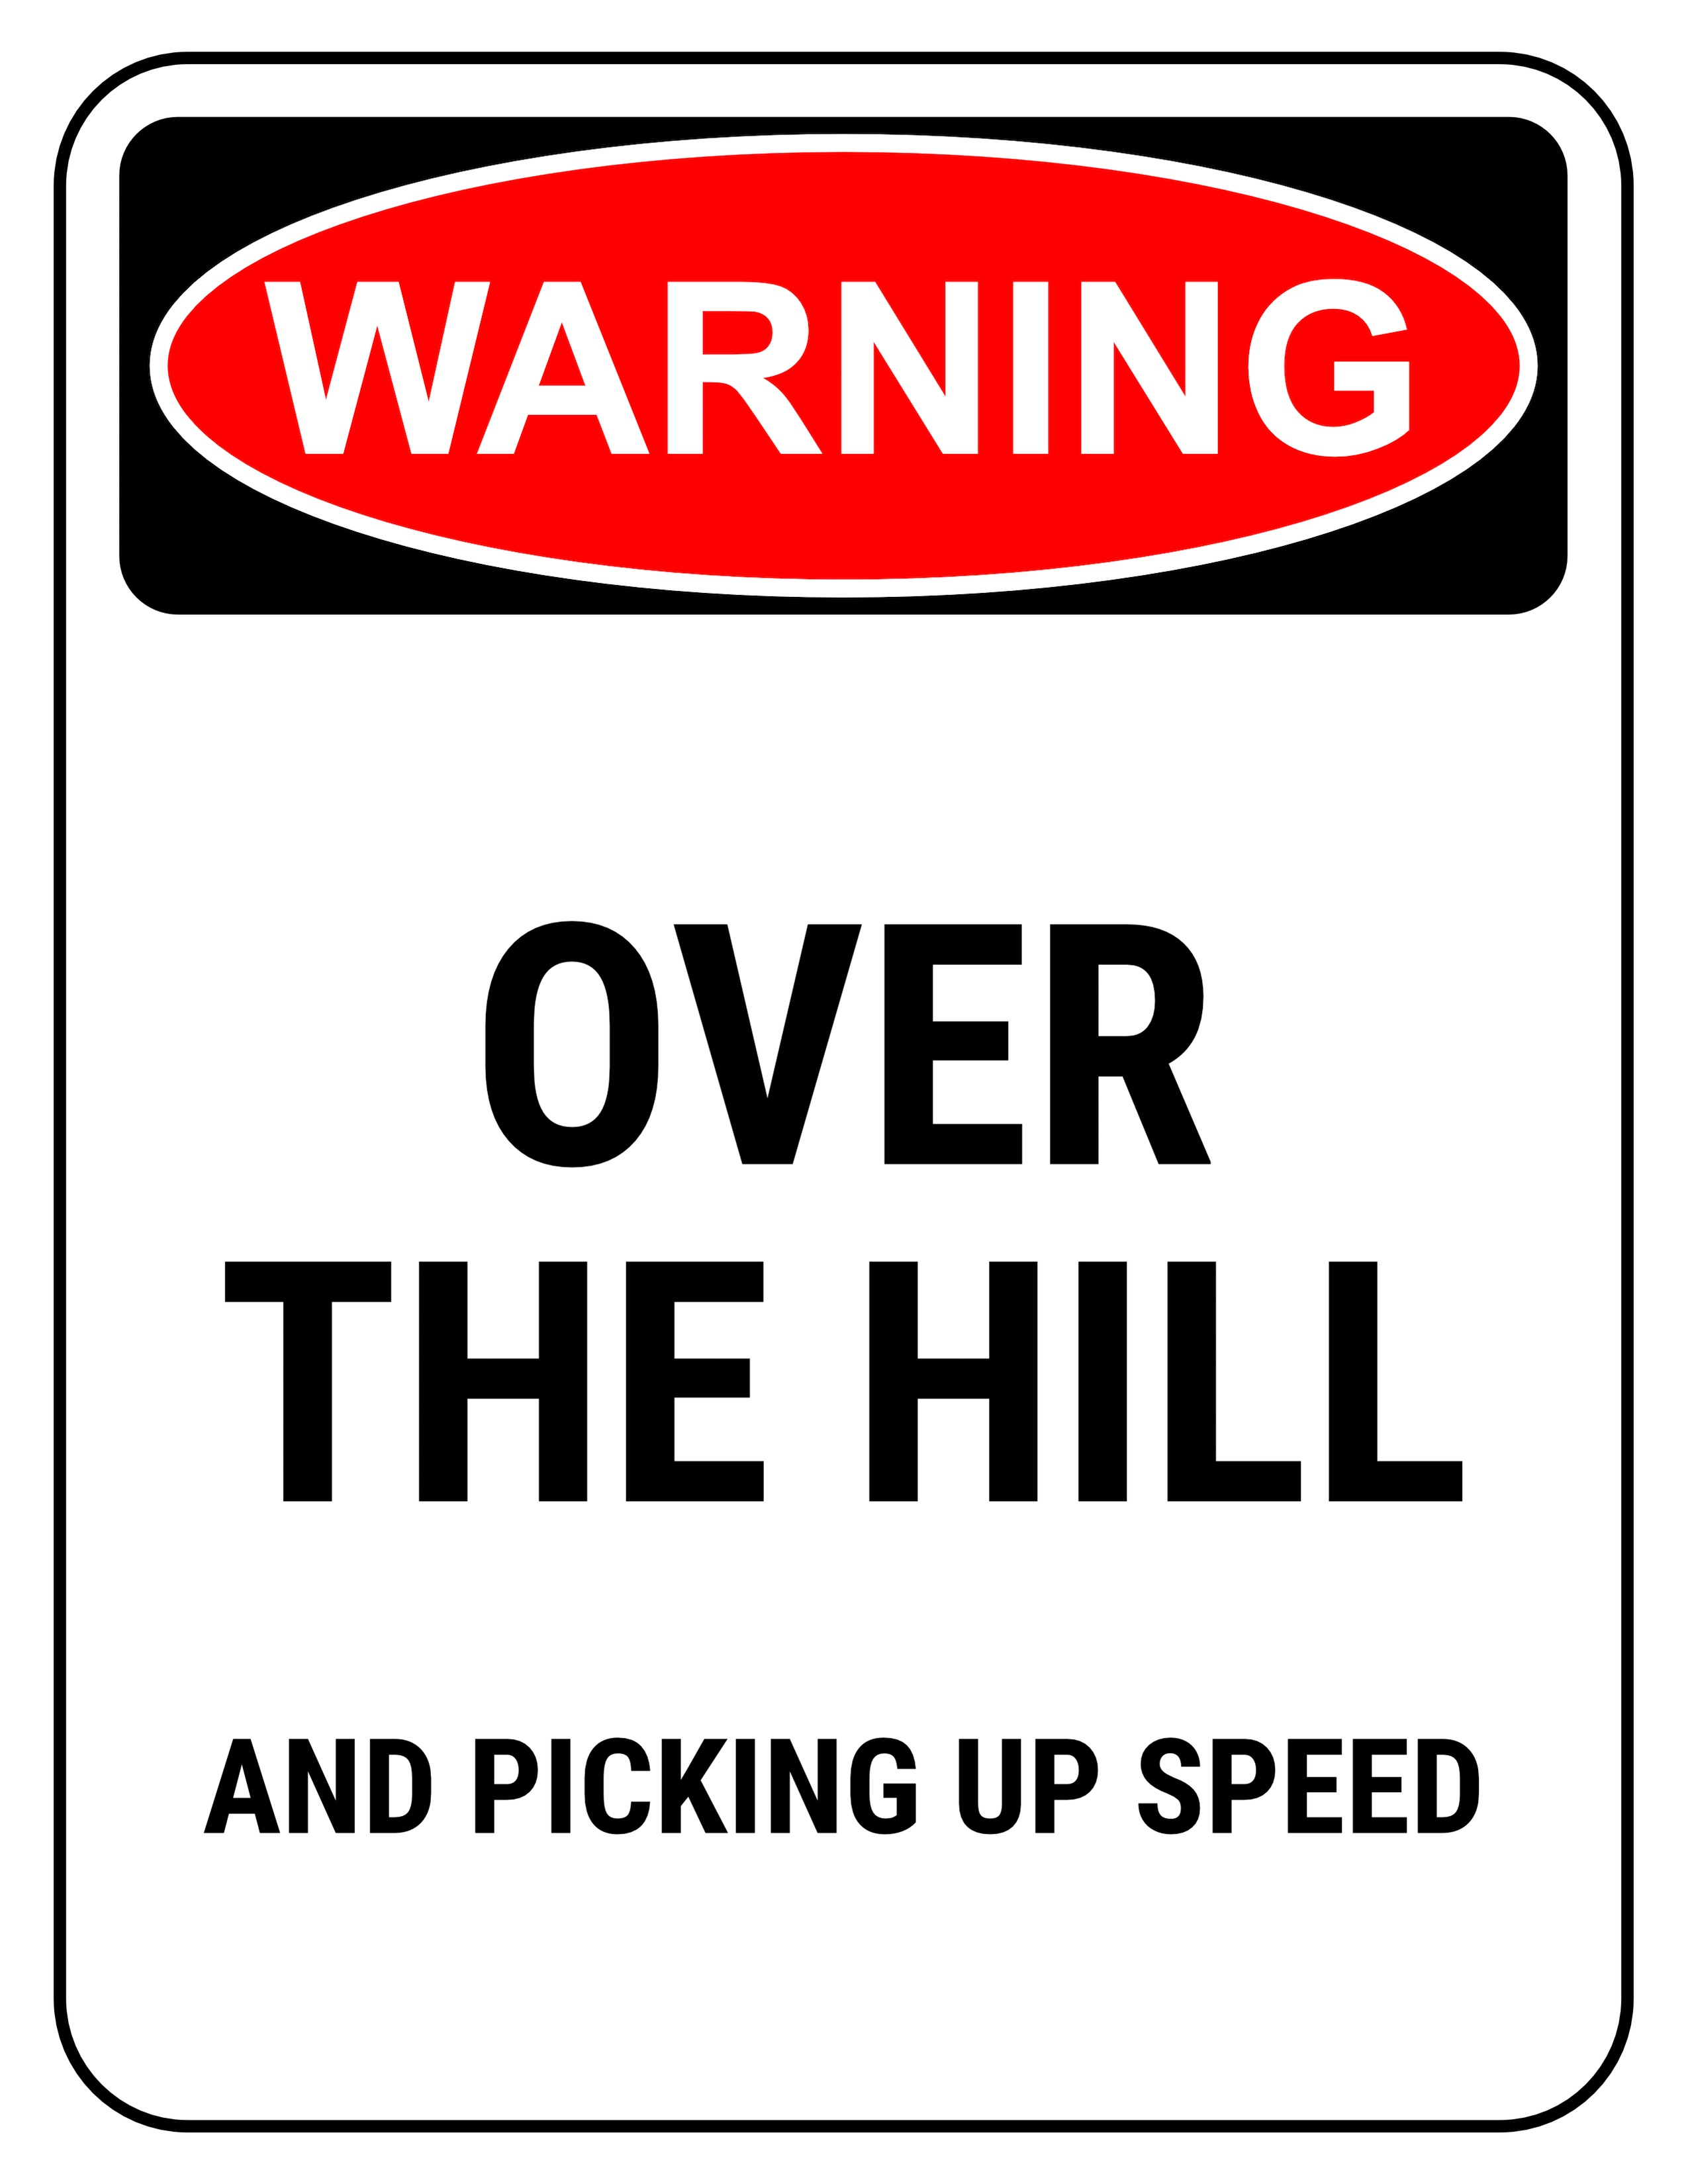 over the hill 50th birthday clip art ; printable-50th-birthday-signs-funny-safety-sign-warning-over-the-hill-2550x3300